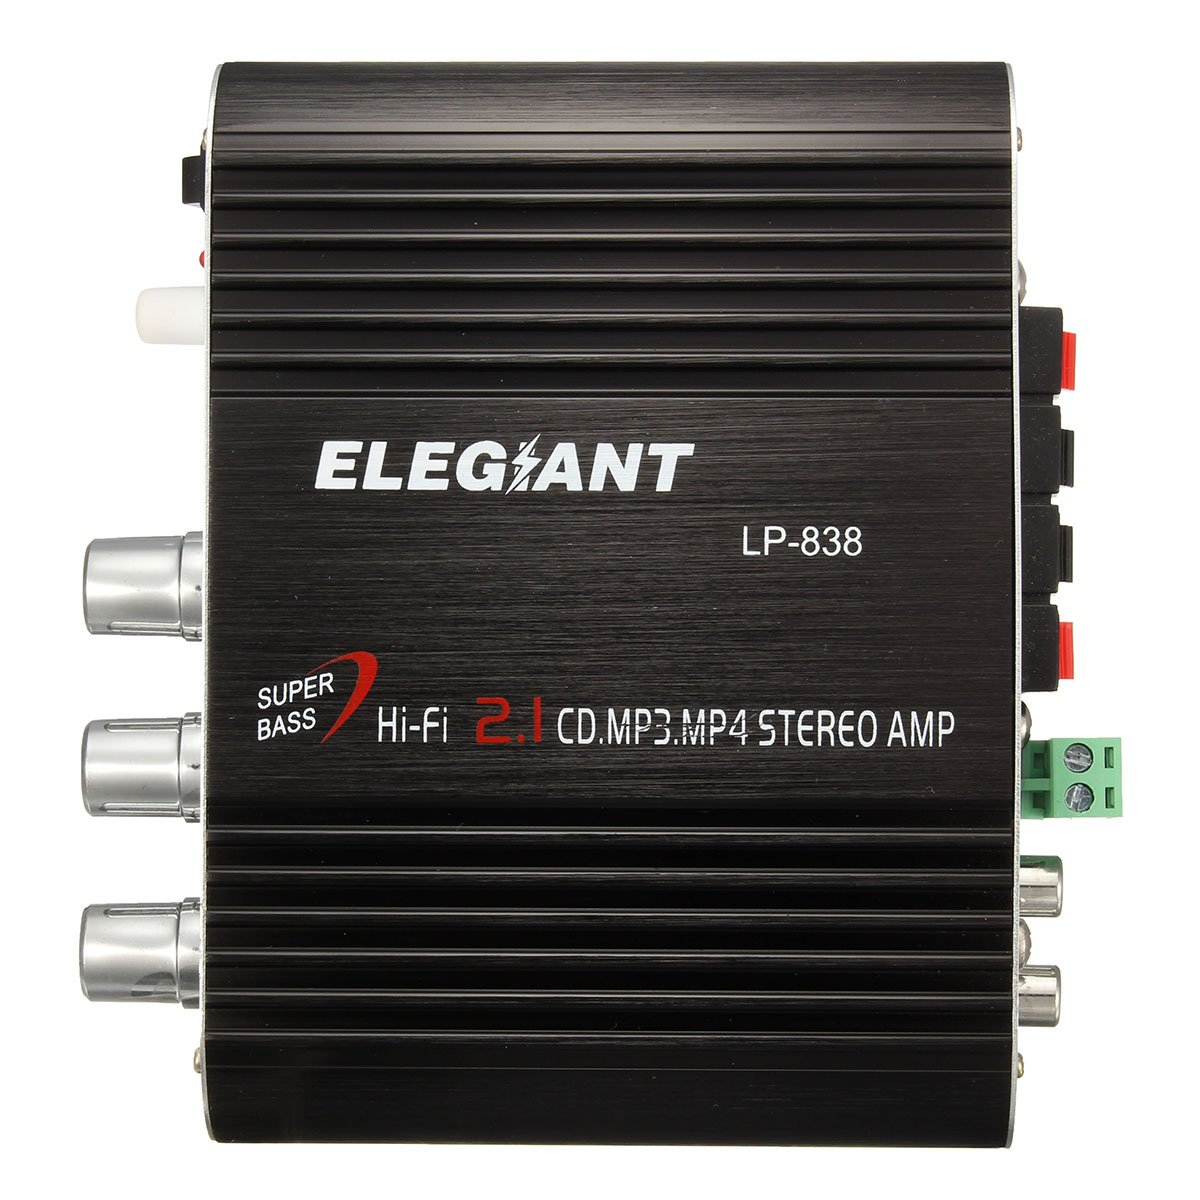 ELEGIANT 20W 12V Mini Hi-Fi Amplifier Booster Radio MP3 Stereo with Power Adapter for Car Motorcycle Home Black+Power Adapter